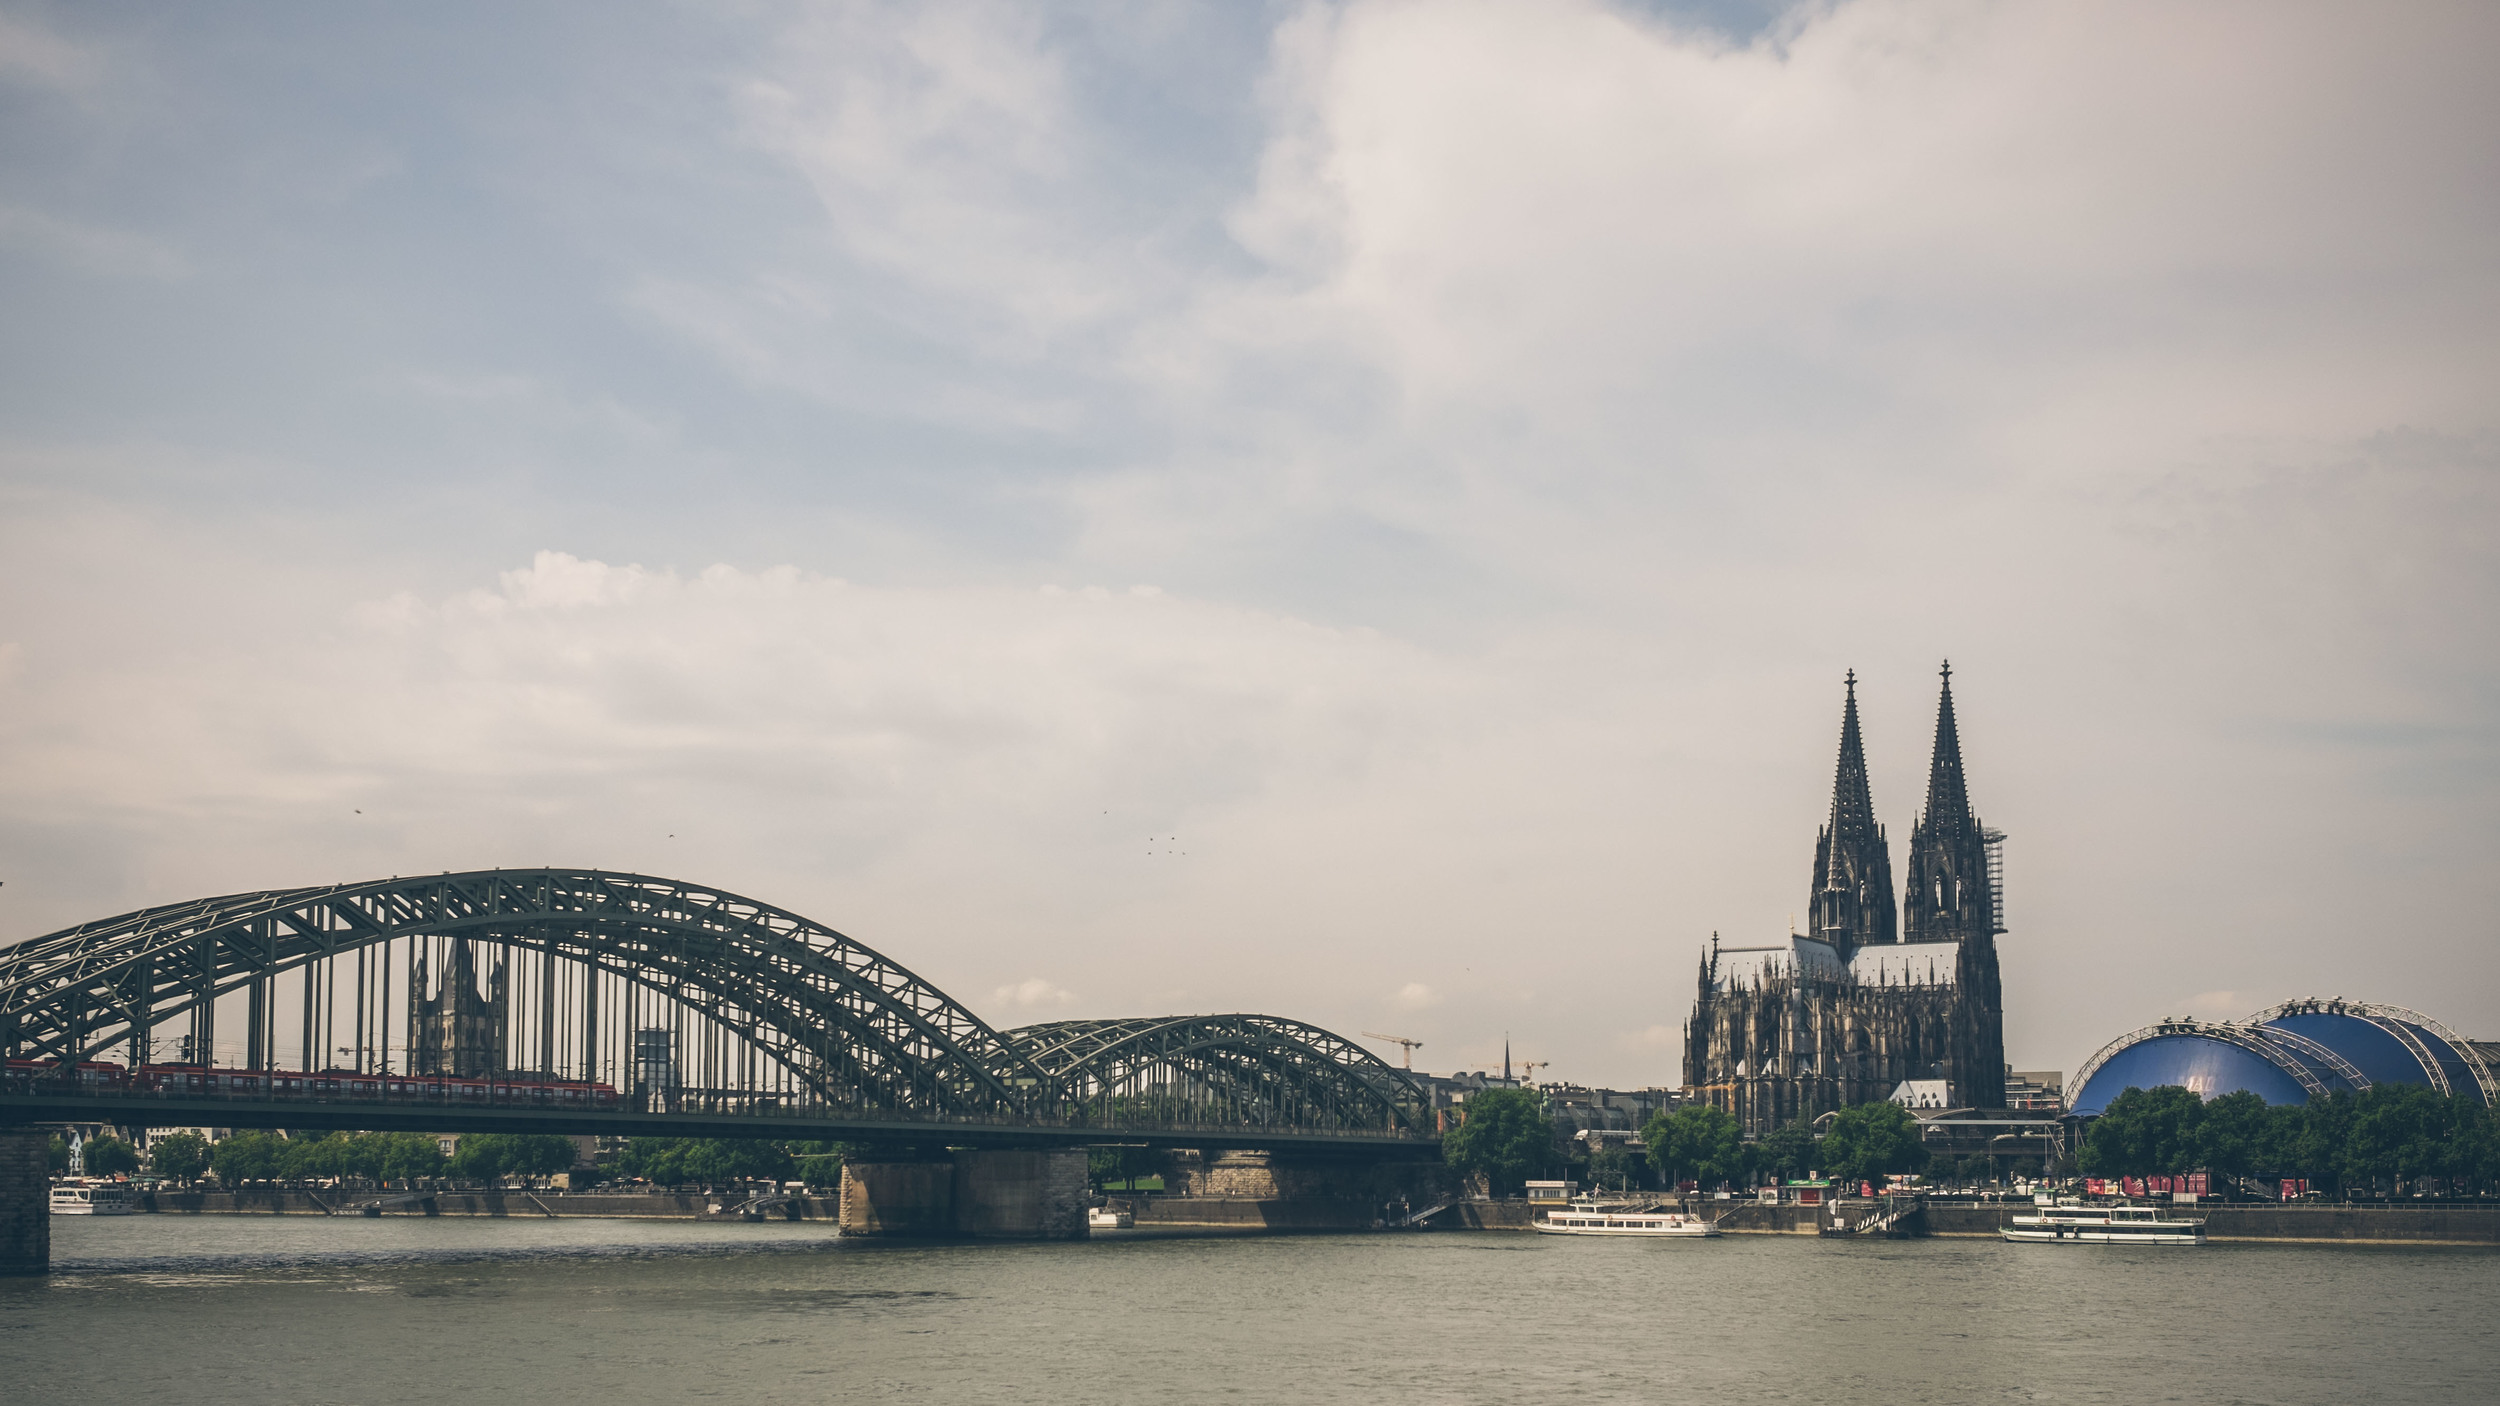 Cologne Cathedral: so big you need to get this far back to fit it all in